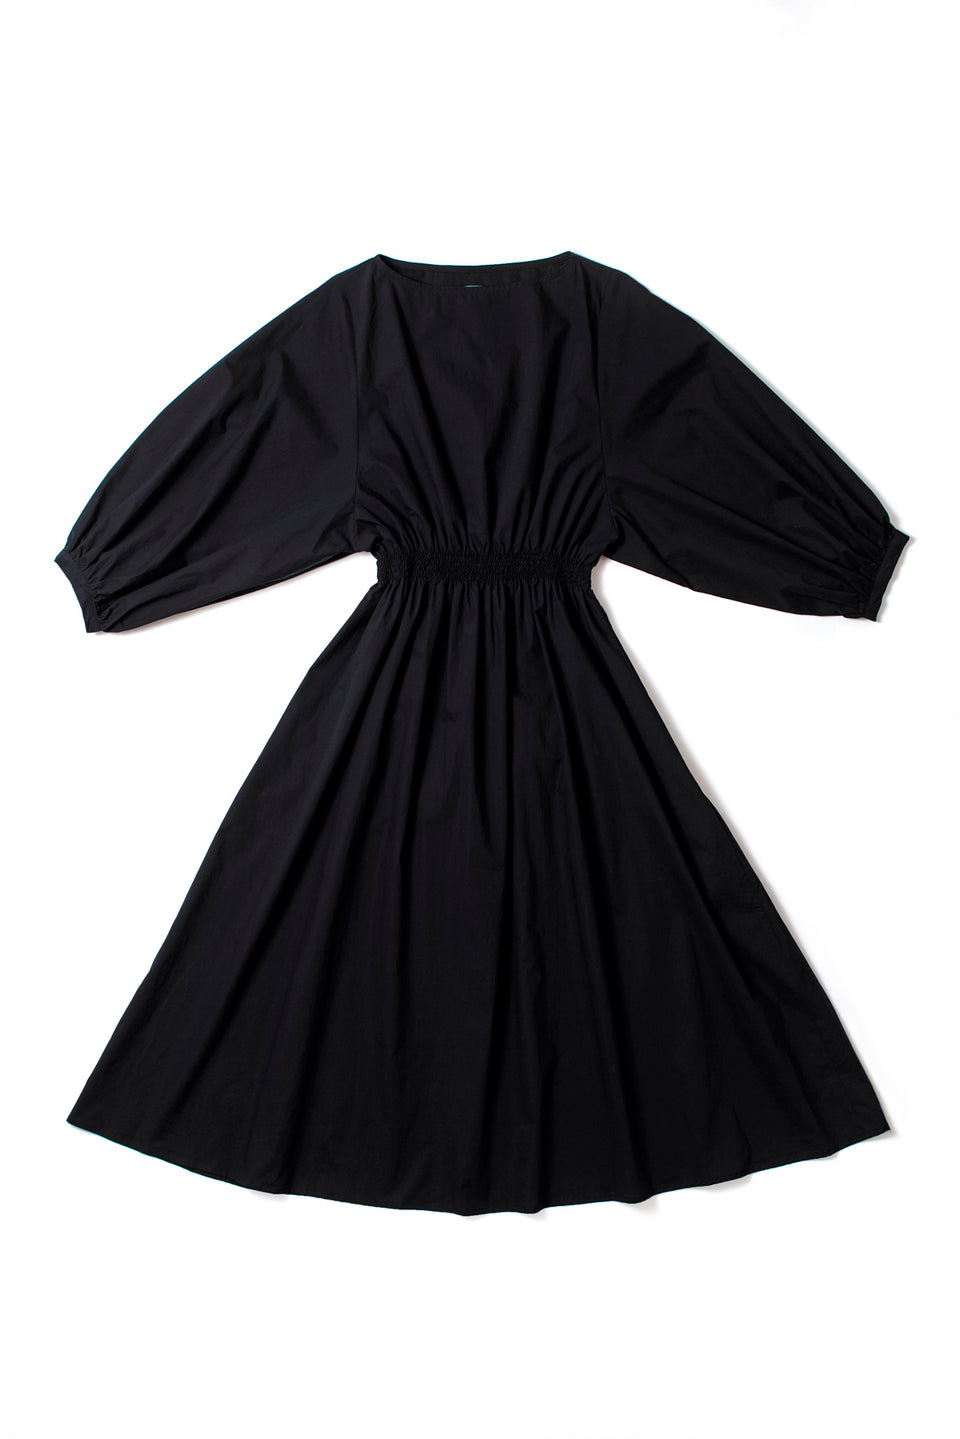 Wandella Dress Black